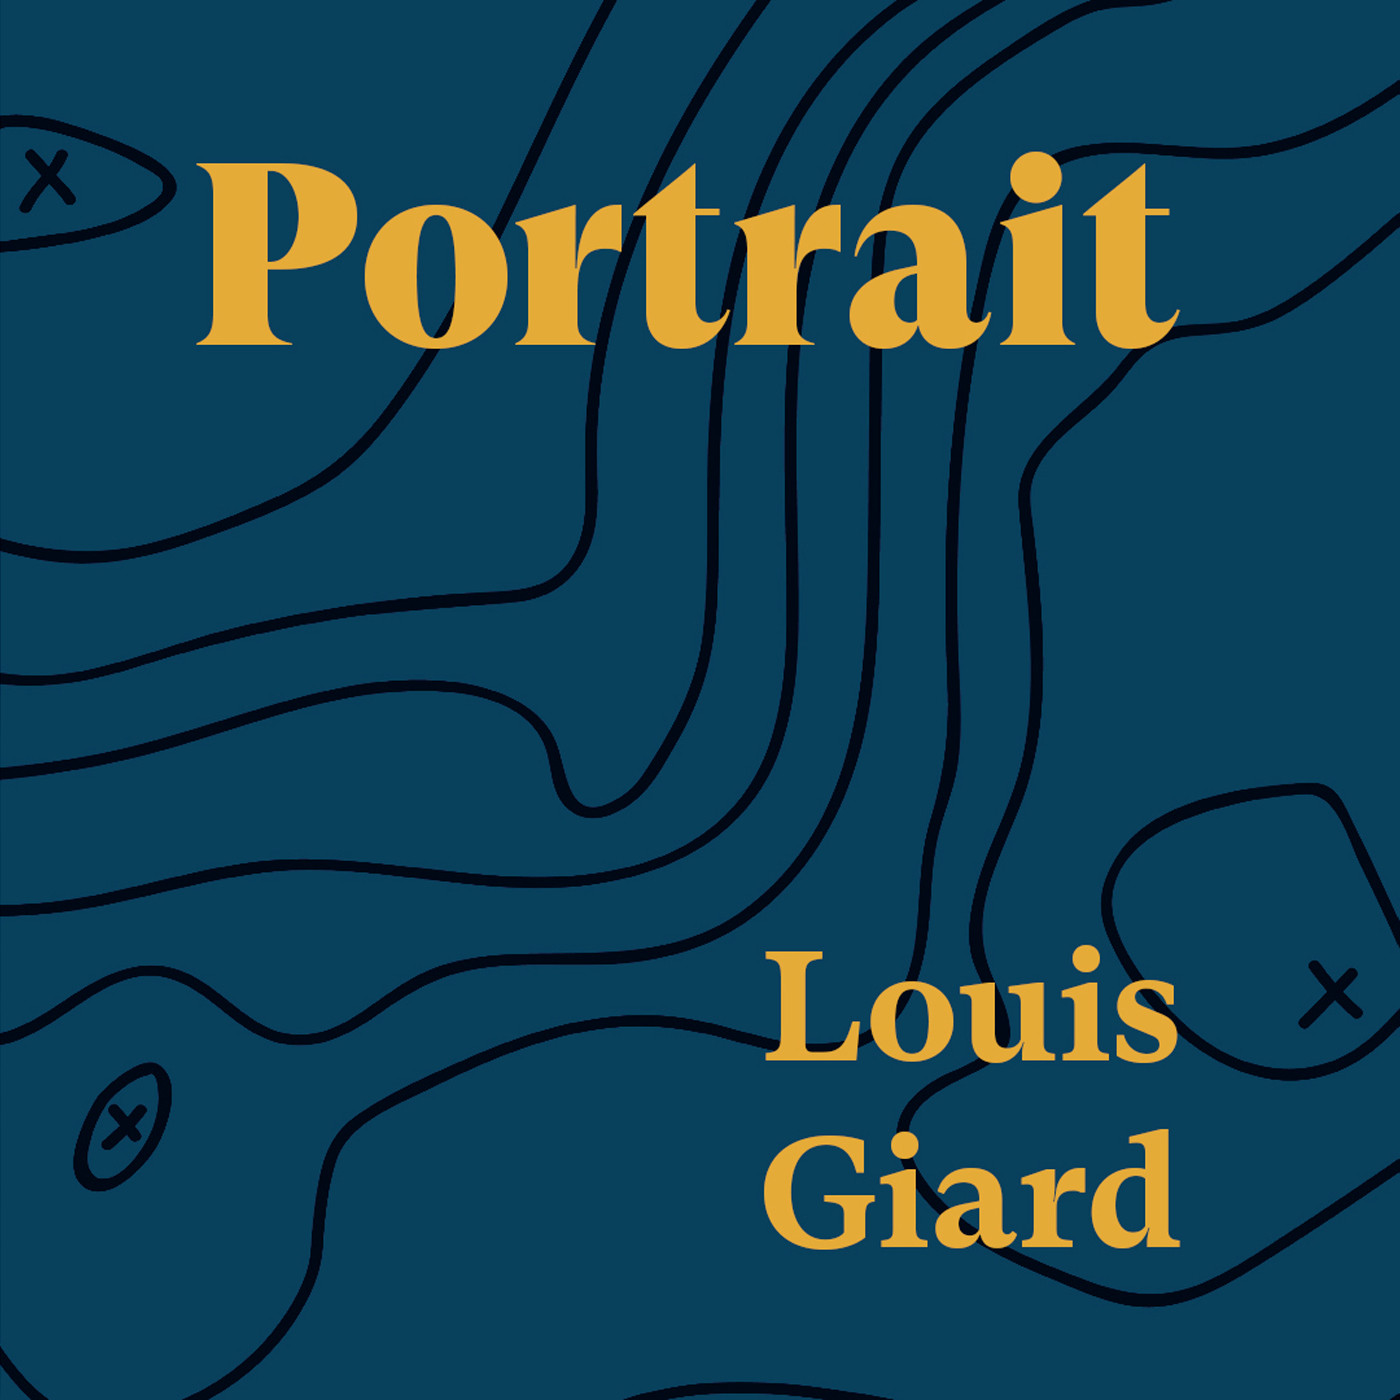 Portrait Louis Giard